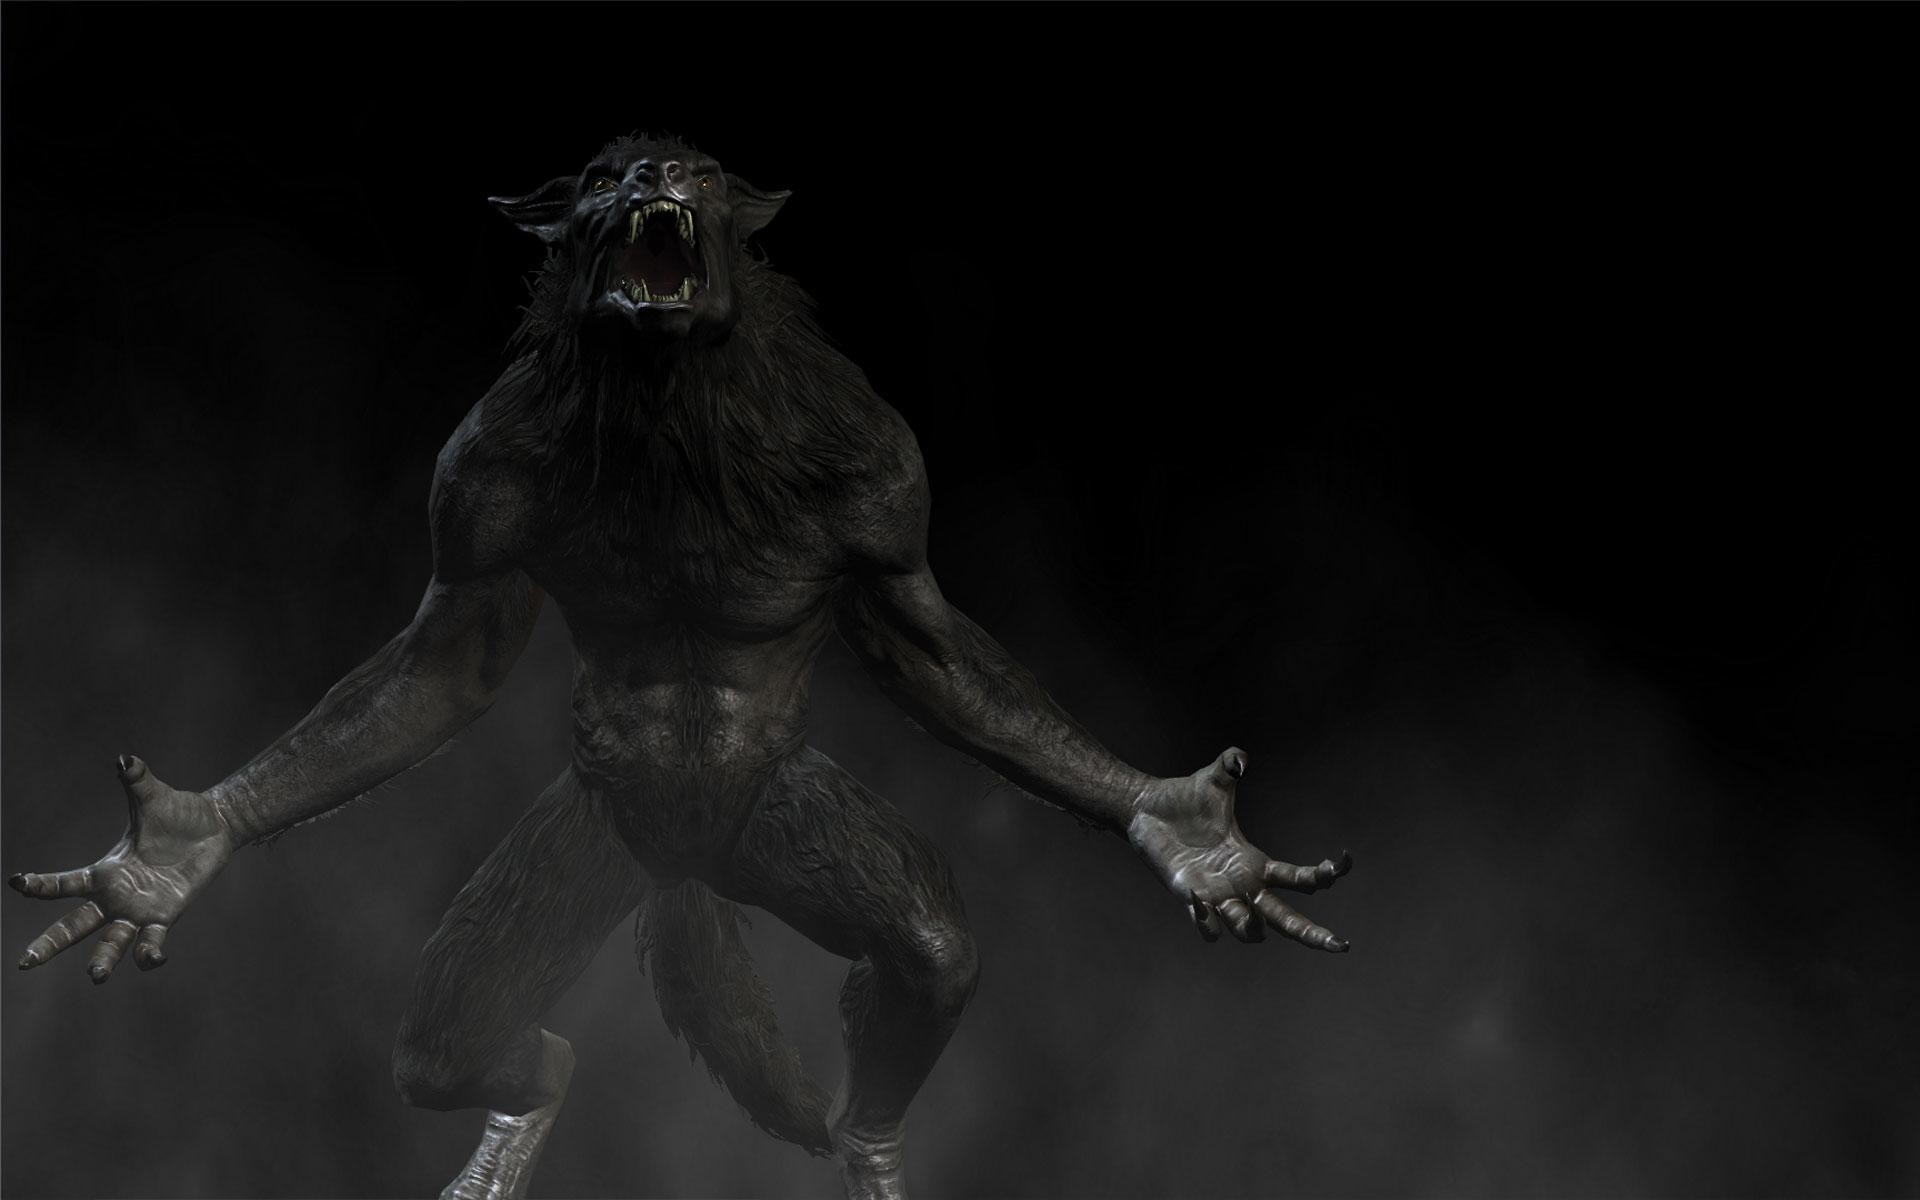 1920x1200 wallpaper.wiki-Werewolf-Picture-Download-Free-PIC-WPD004912